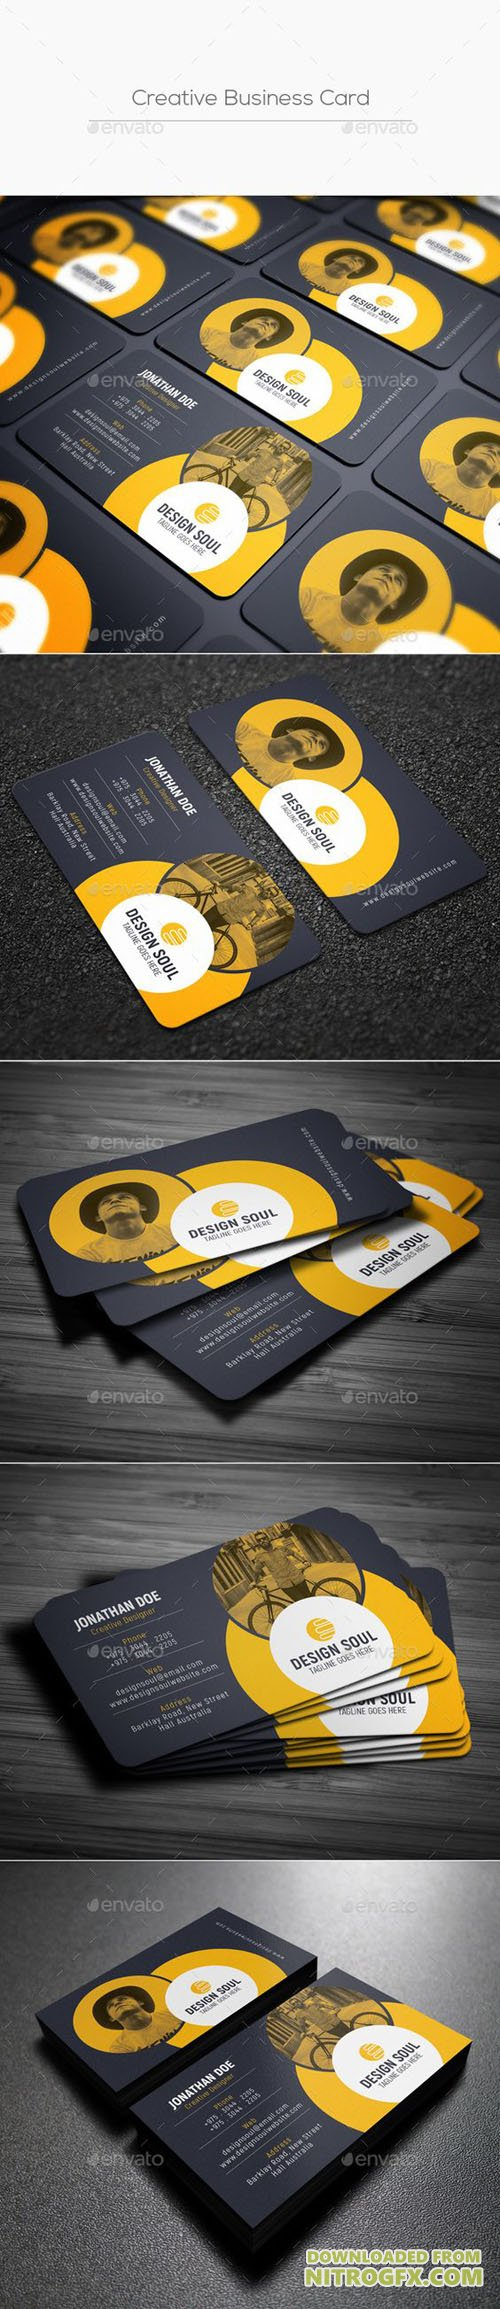 GraphicRiver - Creative Business Card 20447467